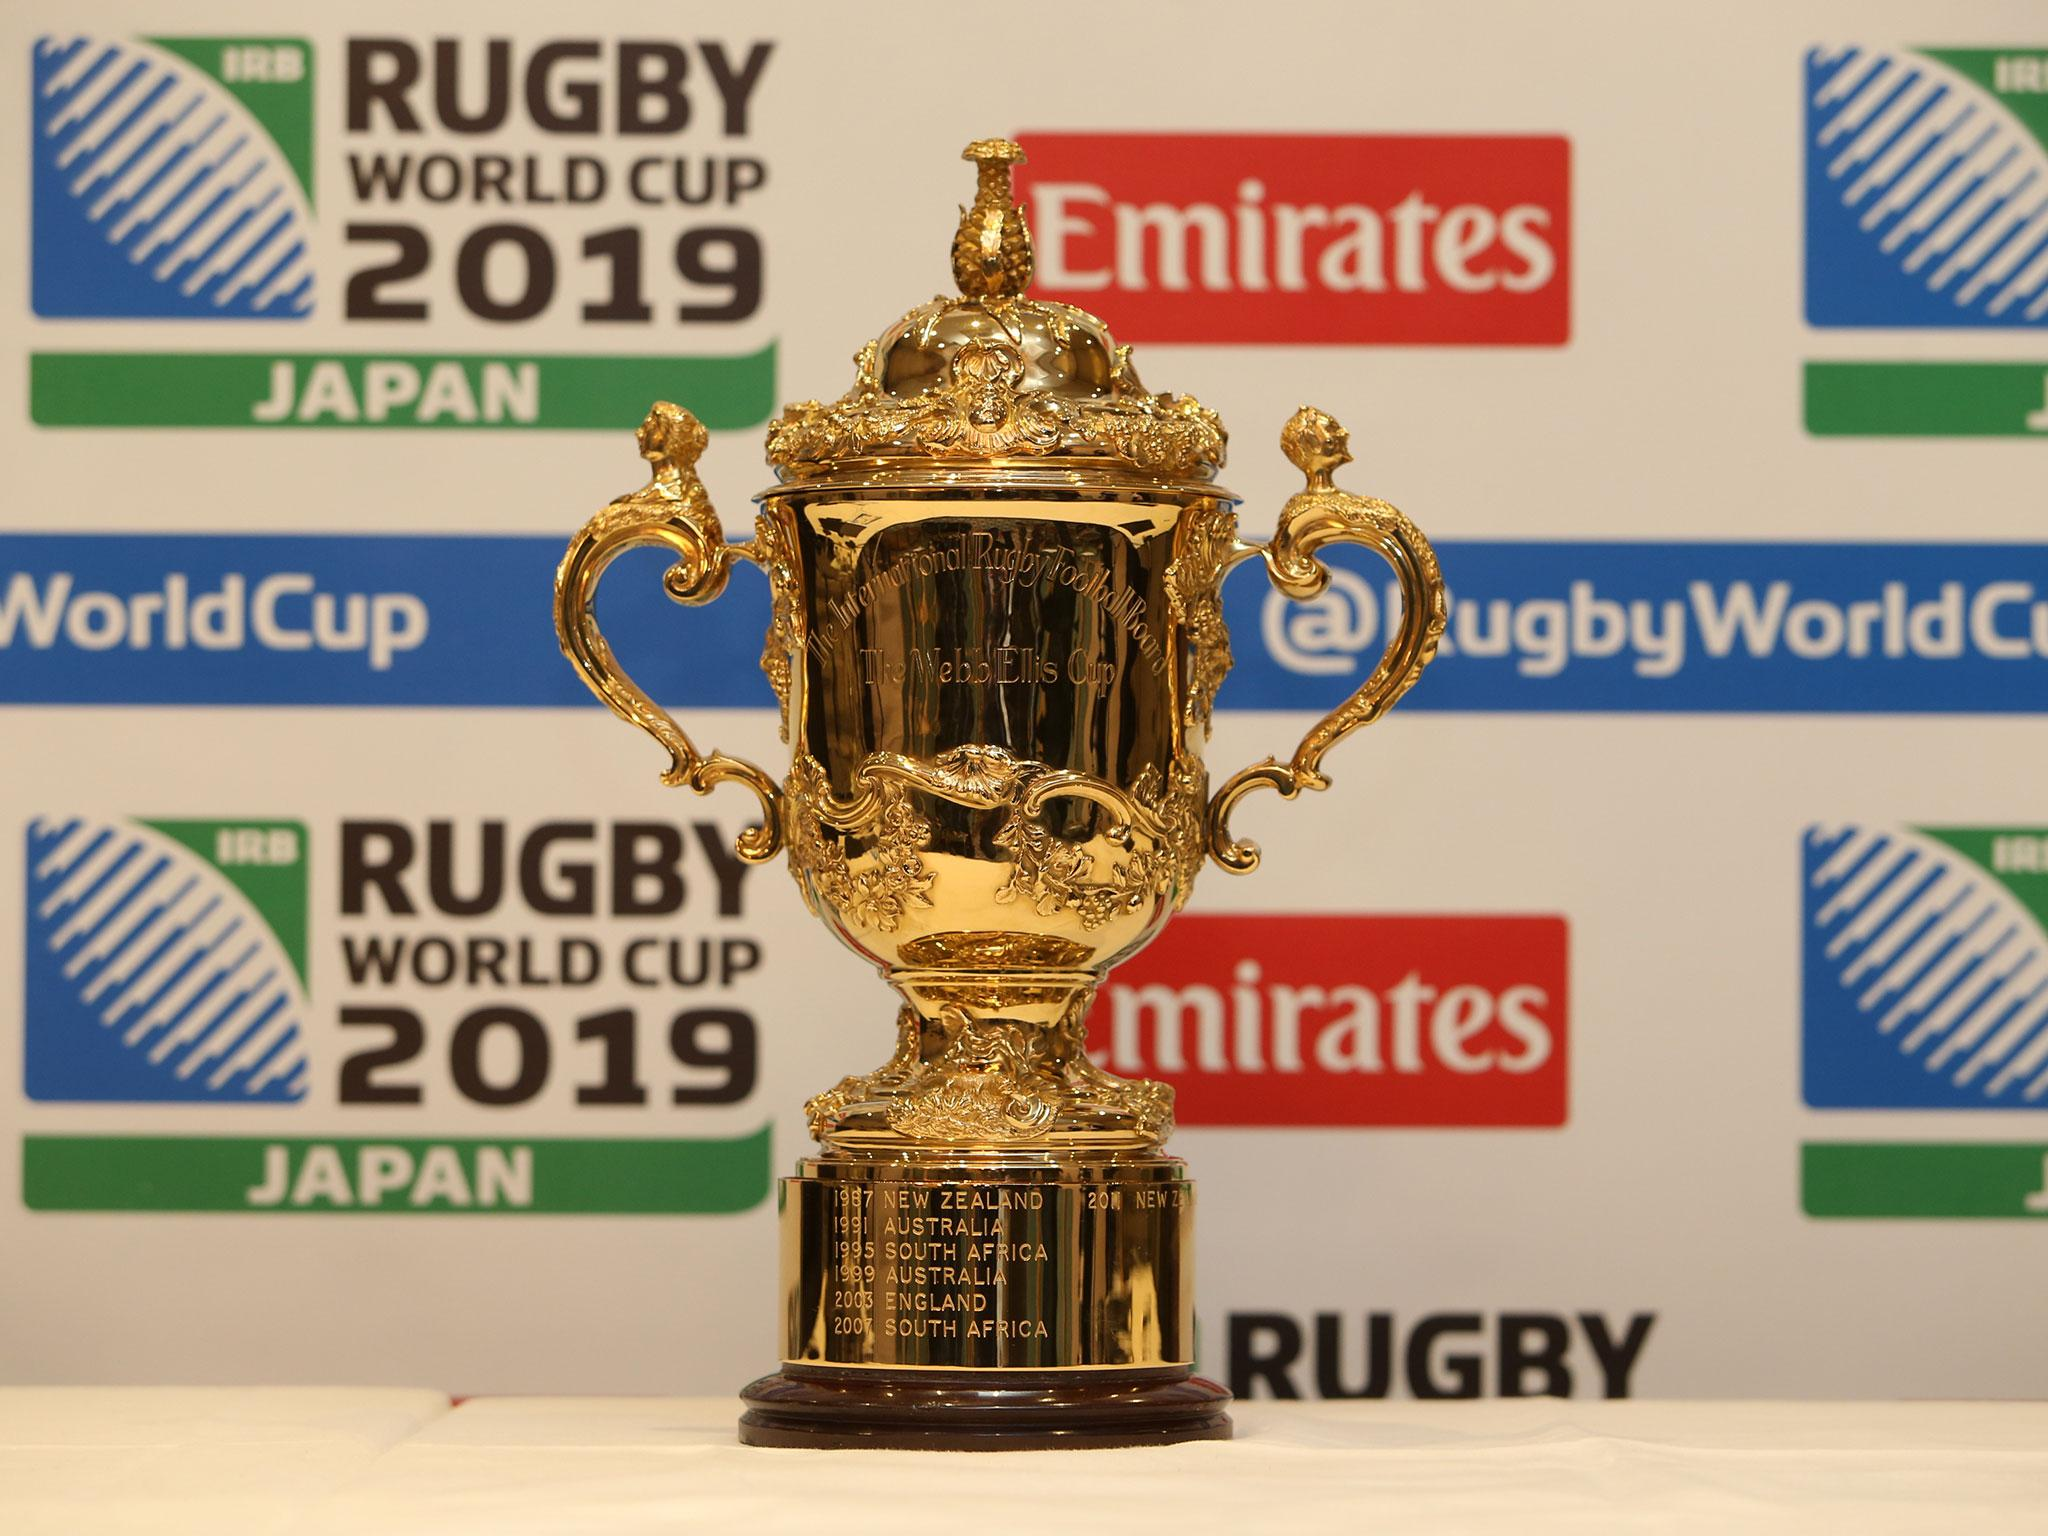 rugby world cup 2019 - photo #27